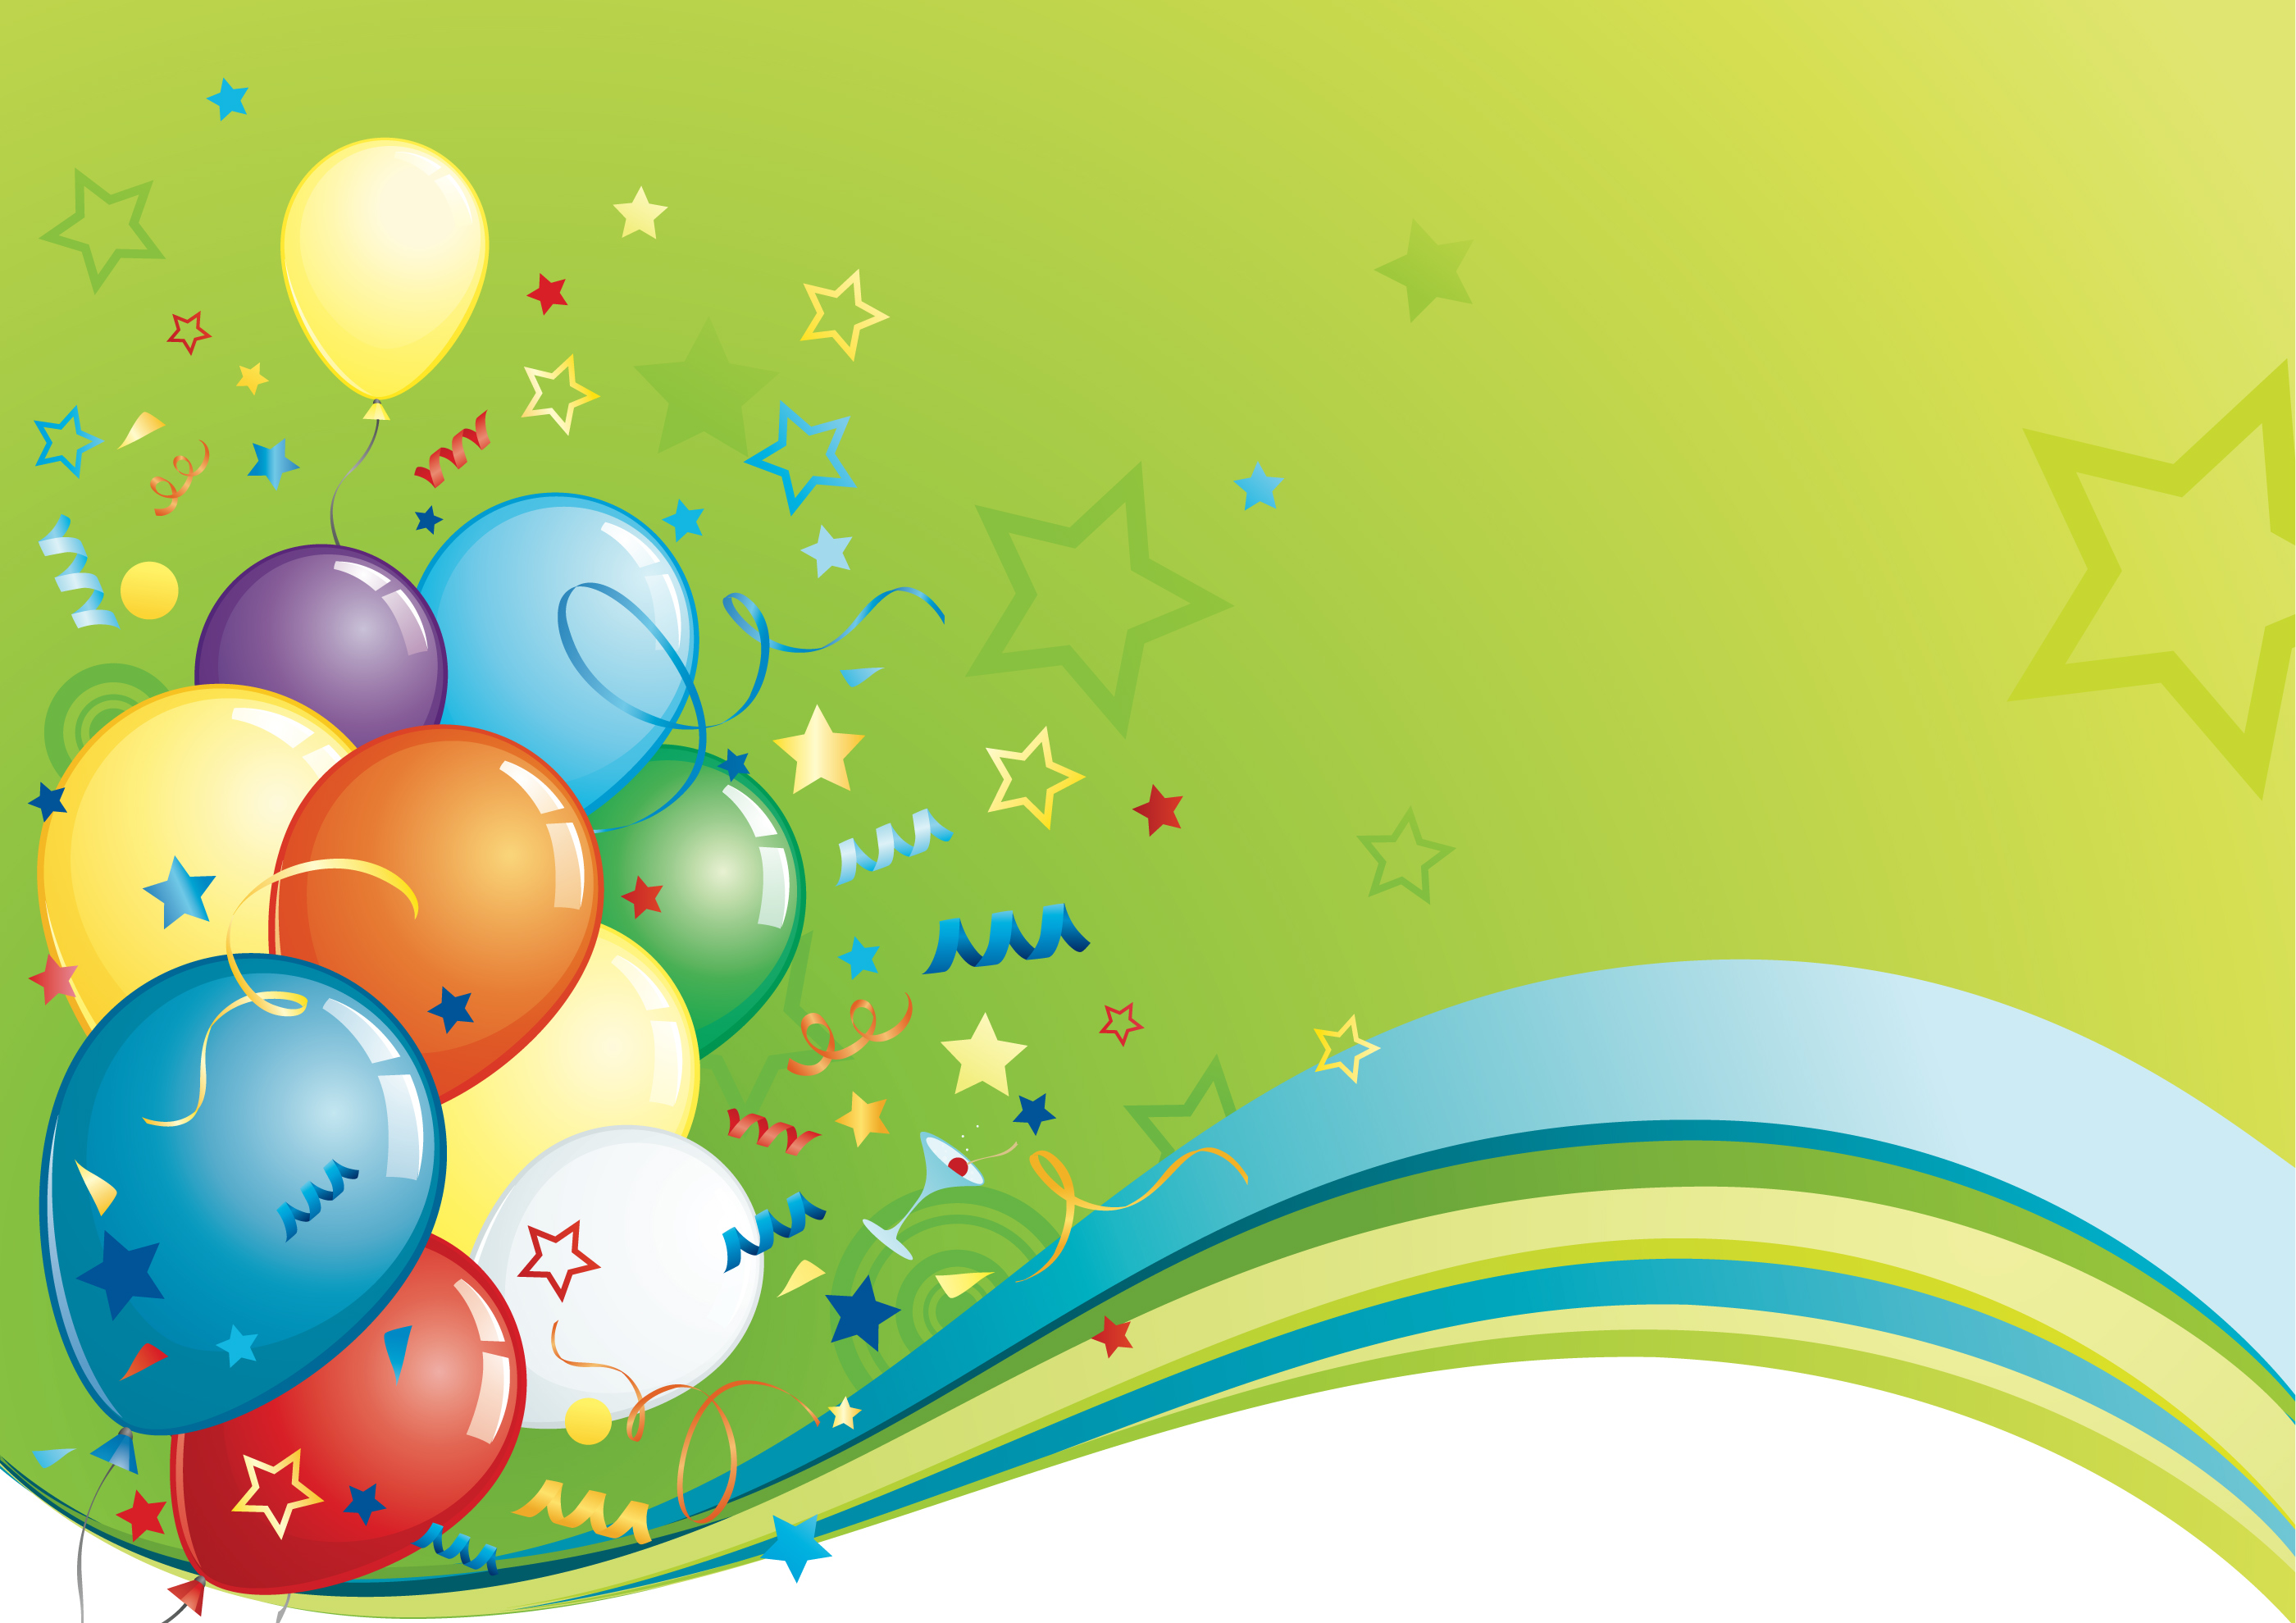 birthday background hd wallpapers ; Happy-birthday-color-green-balloon-hd-images-free-download